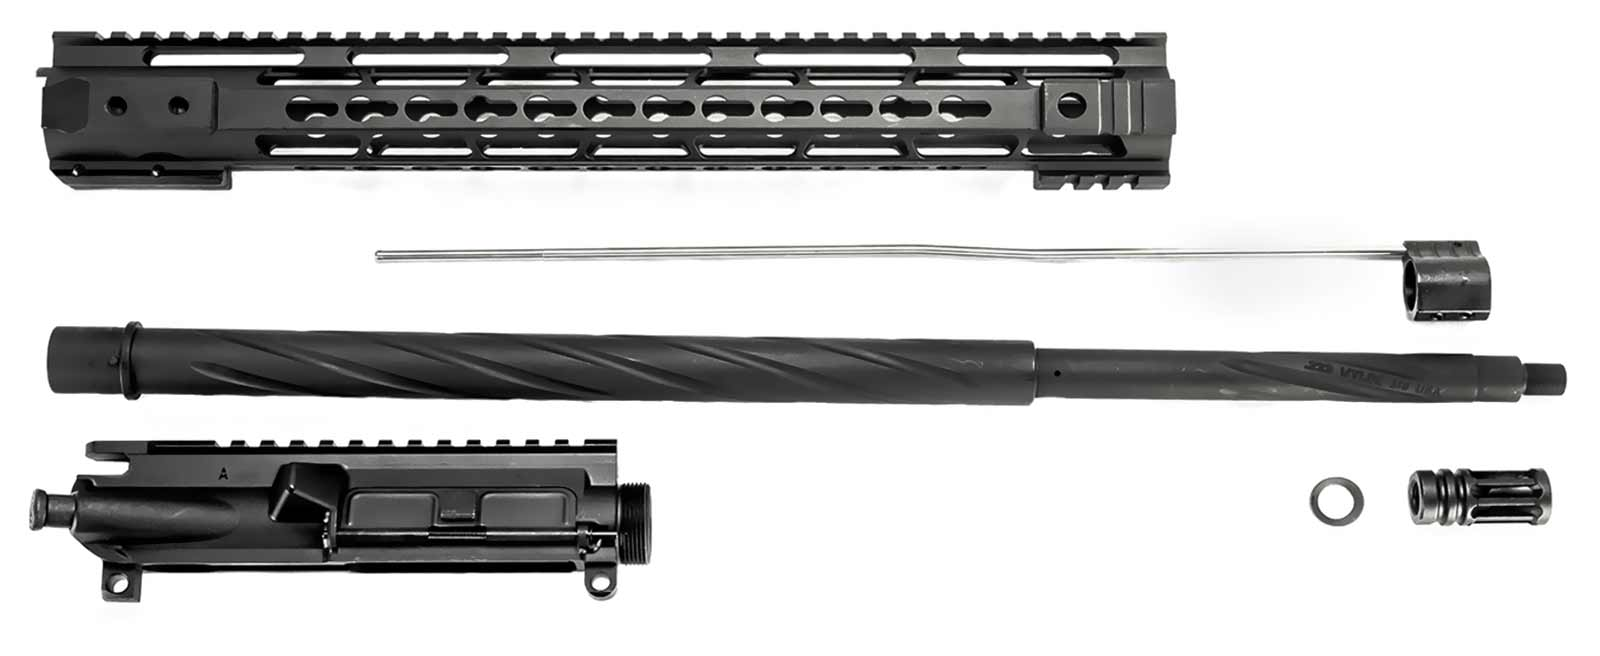 AR-15 Unassembled Upper Assembly - 20